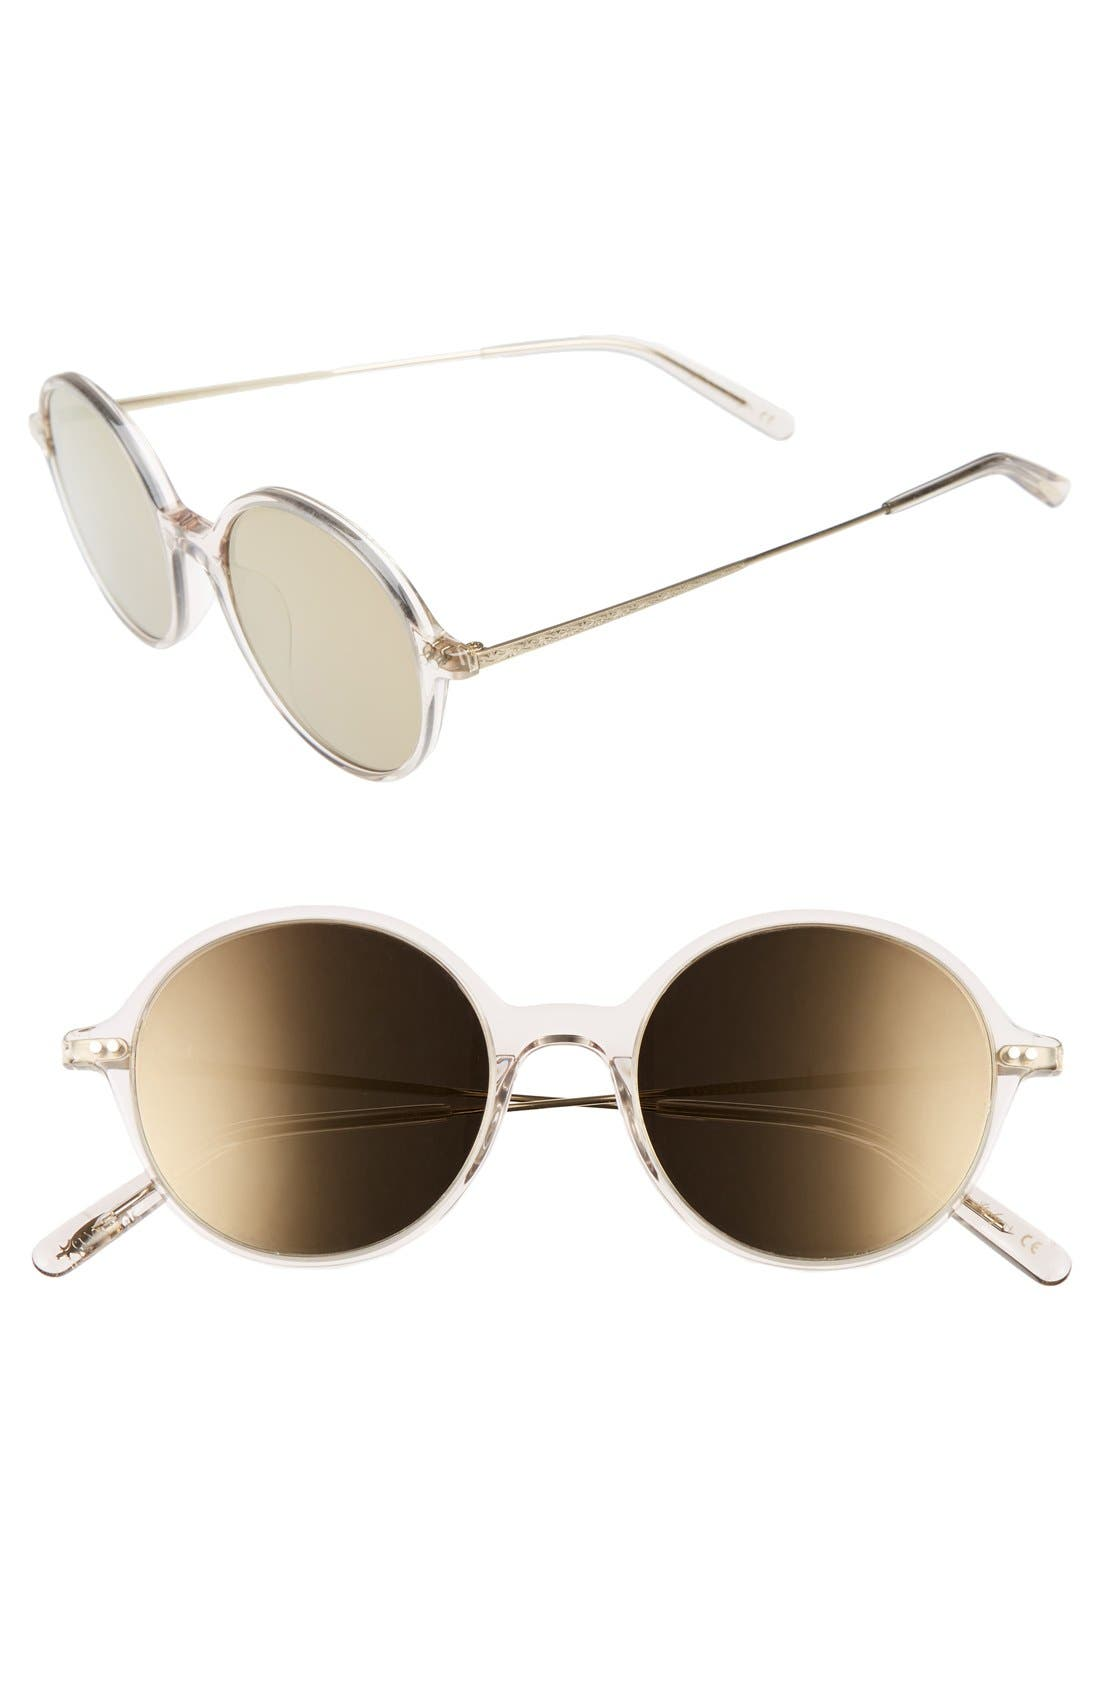 Corby 51mm Round Sunglasses,                         Main,                         color, Dune